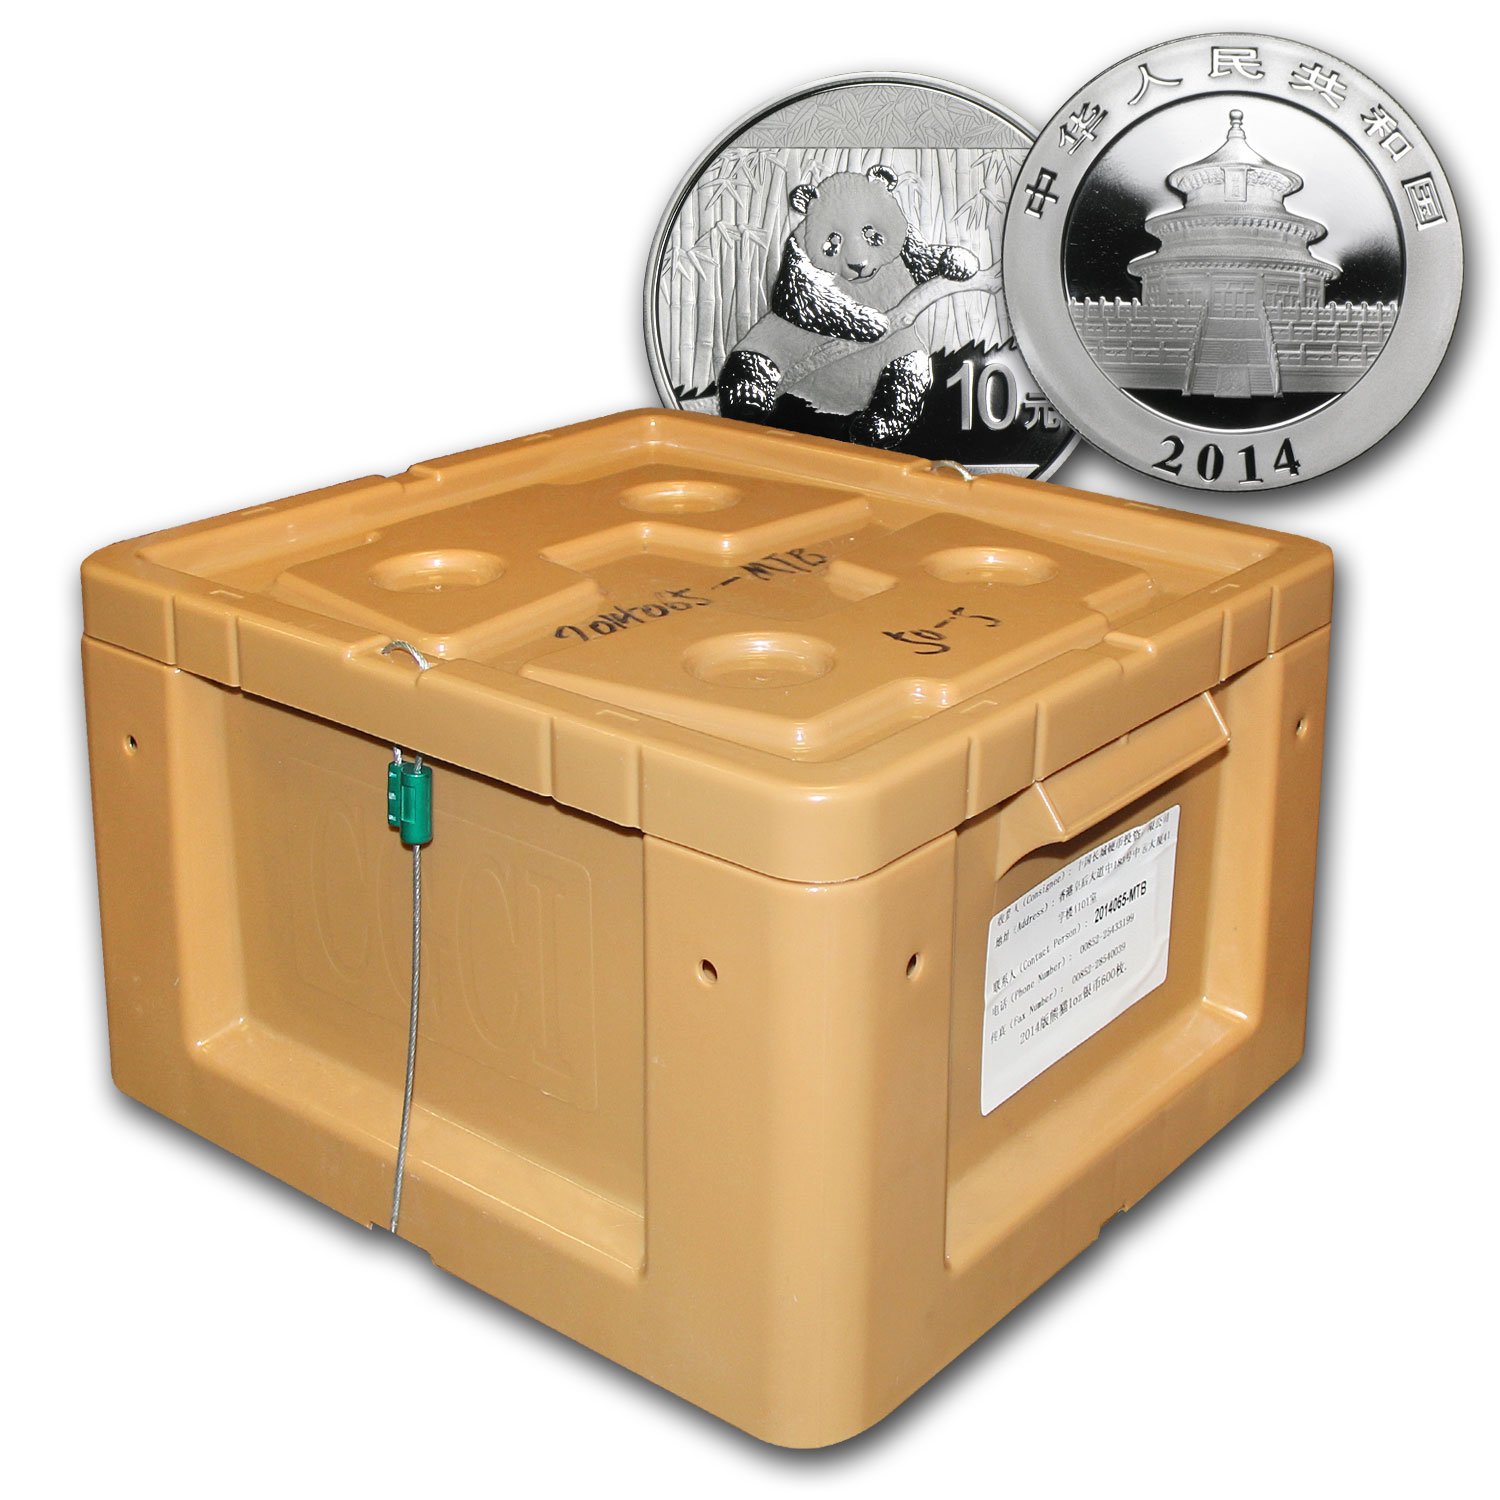 2014 1 oz Silver Chinese Panda 600-Coin Monster Box (Sealed)